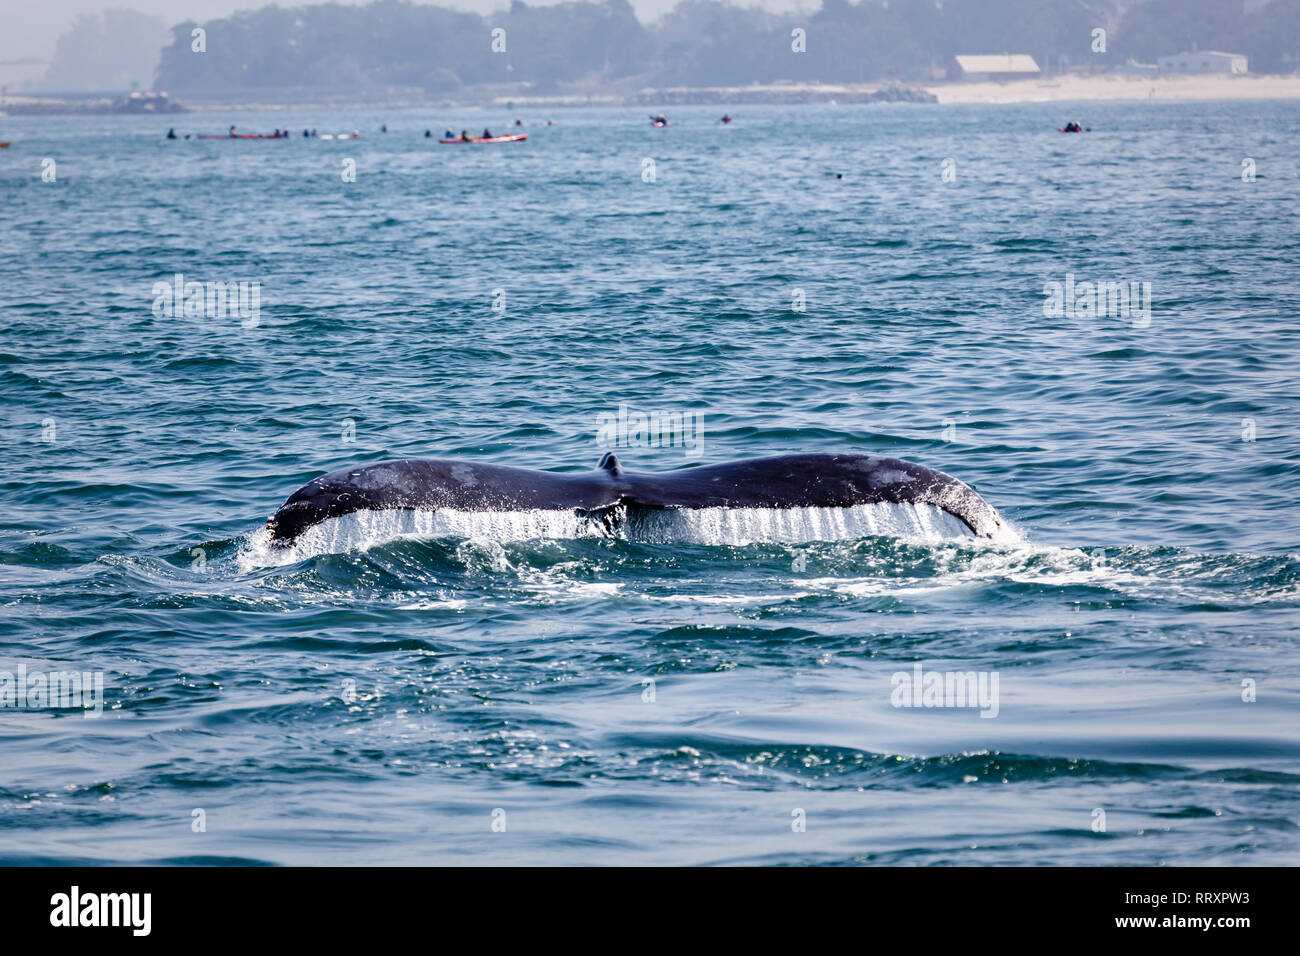 Closeup view of gray whale lobtailing off the coast of San Francisco - Stock Image